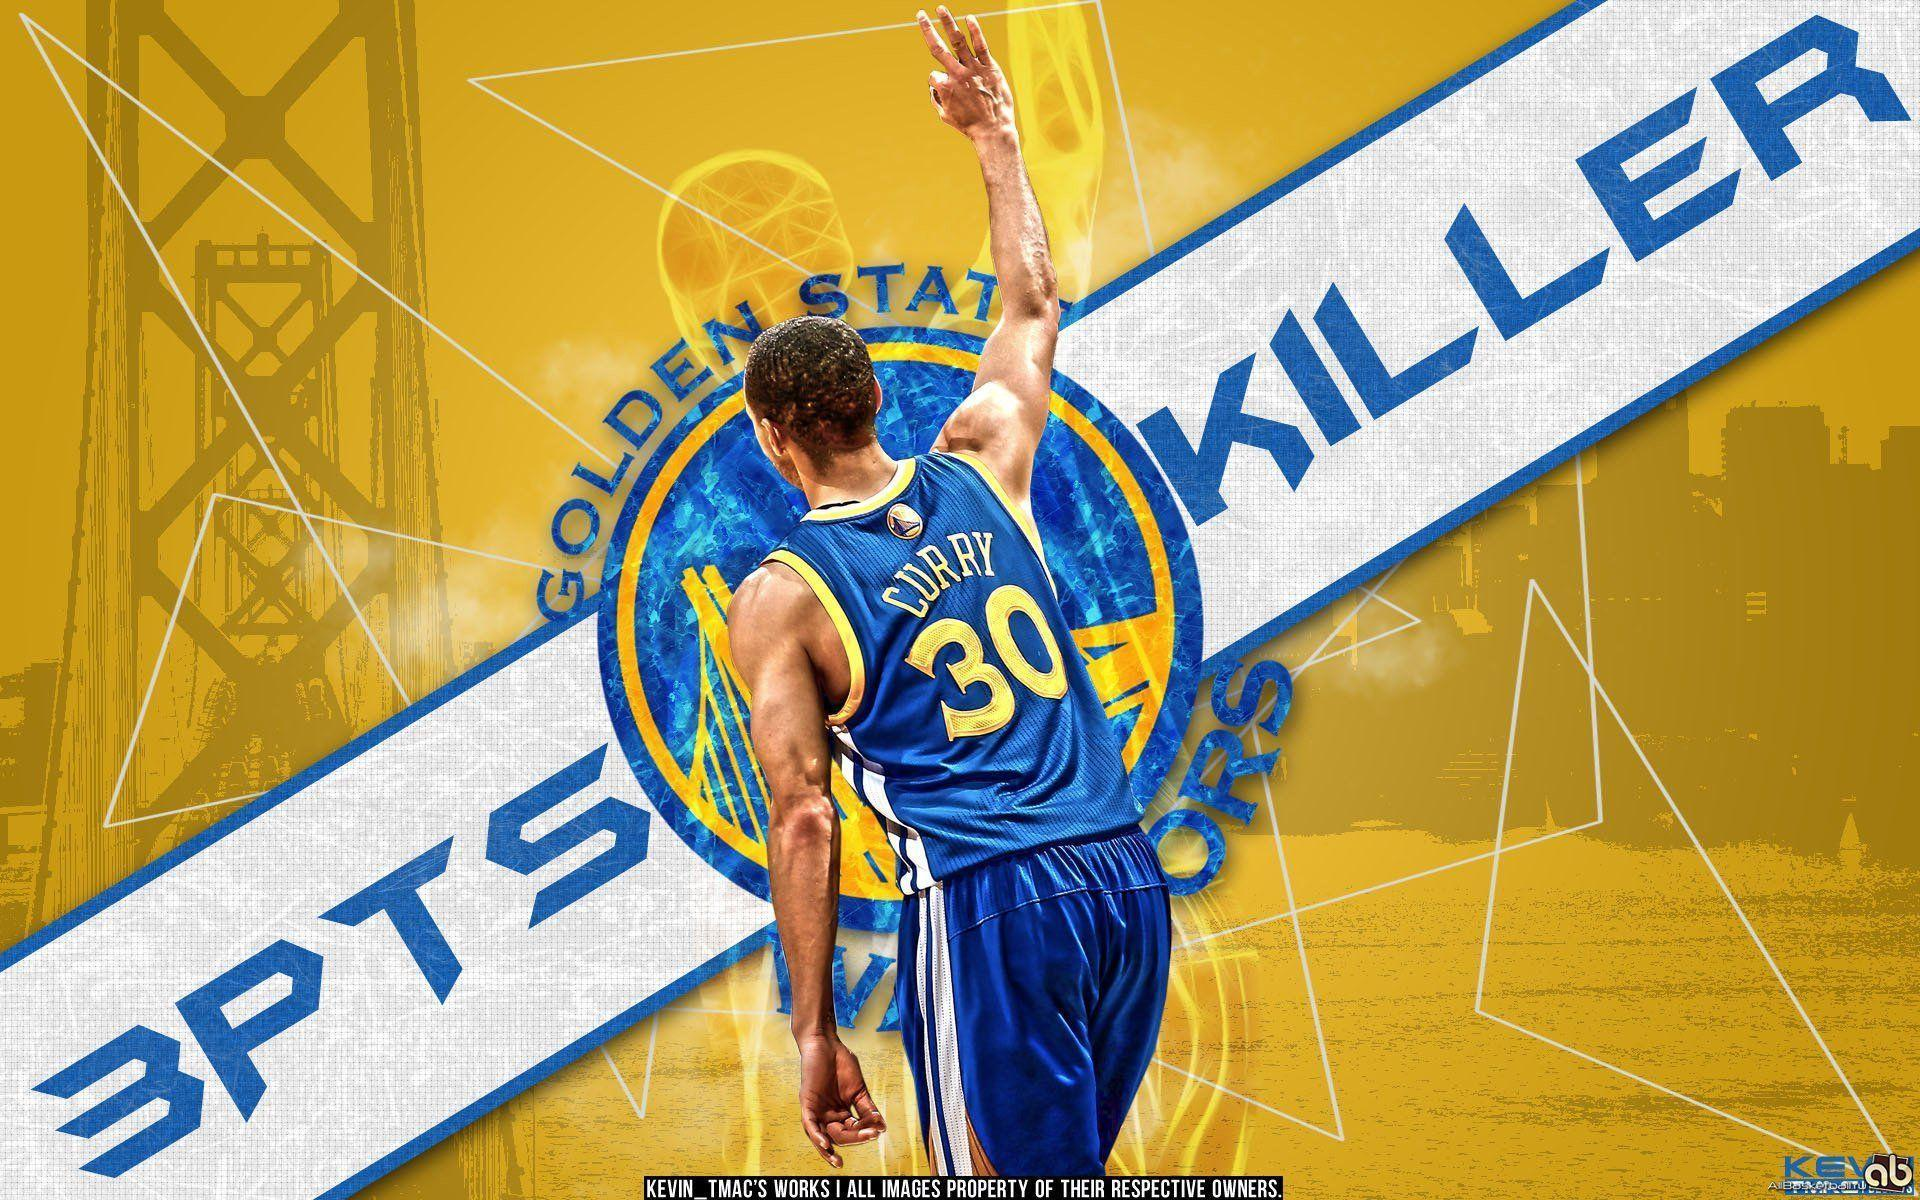 Golden State Warriors Wallpapers Group with 59 items